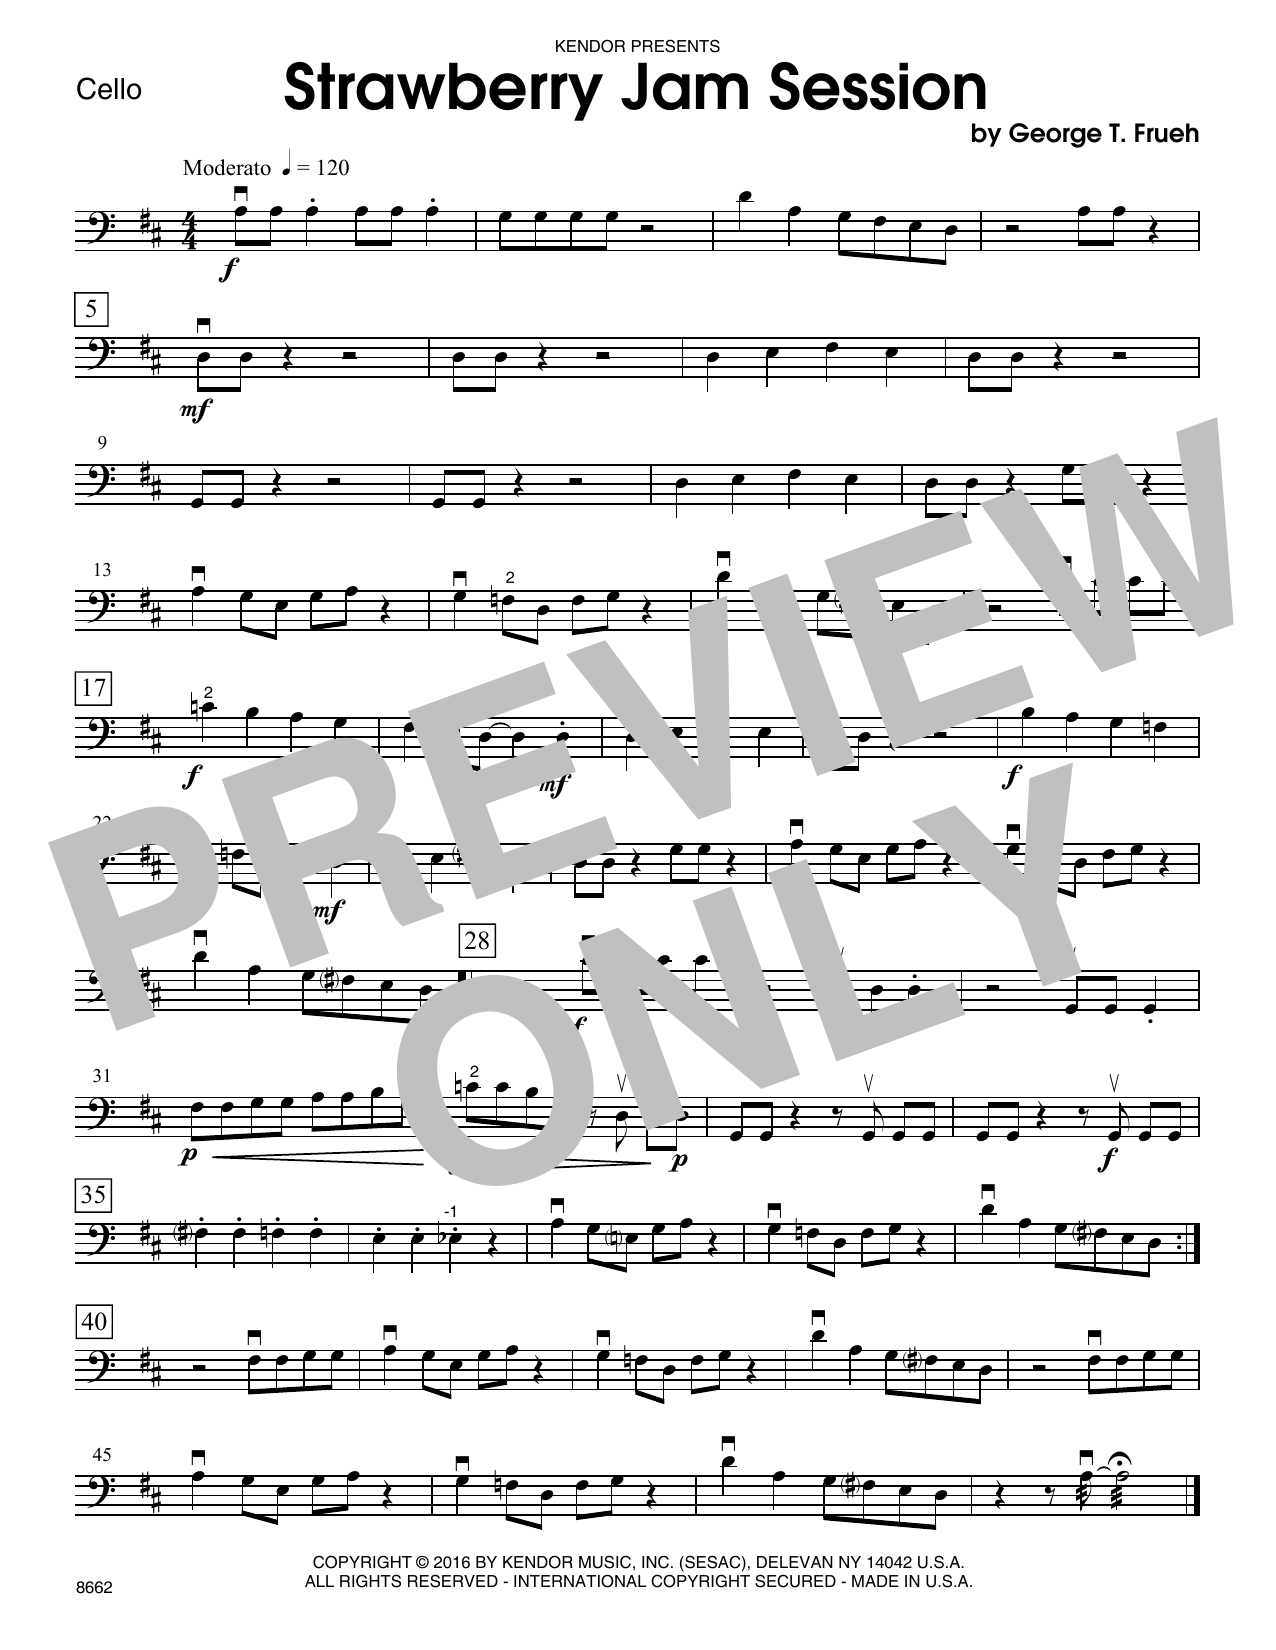 Strawberry Jam Session - Cello Sheet Music